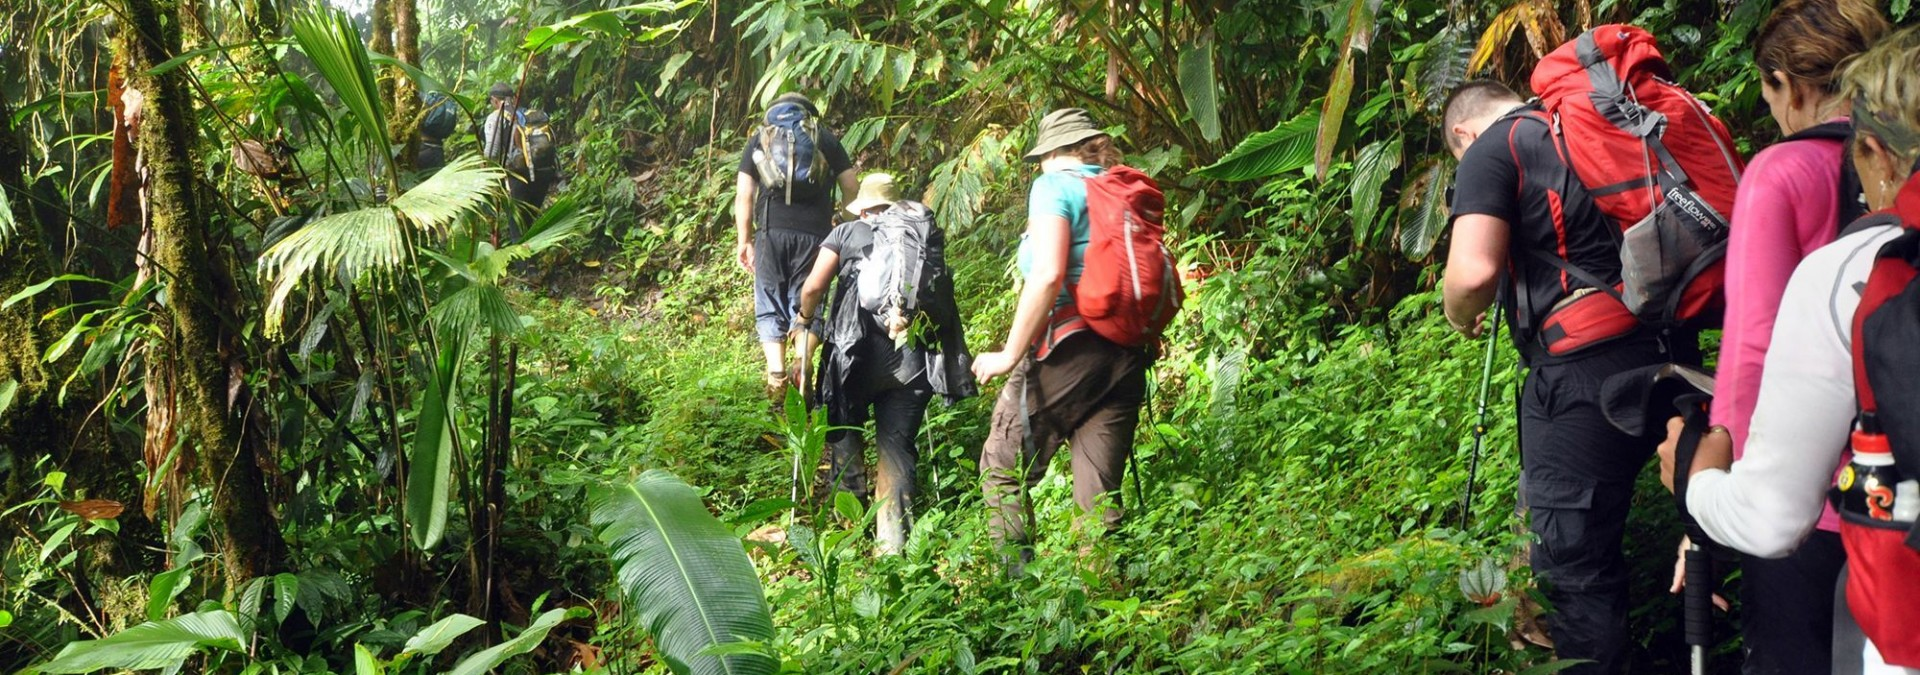 Jungle trekking in Costa Rica